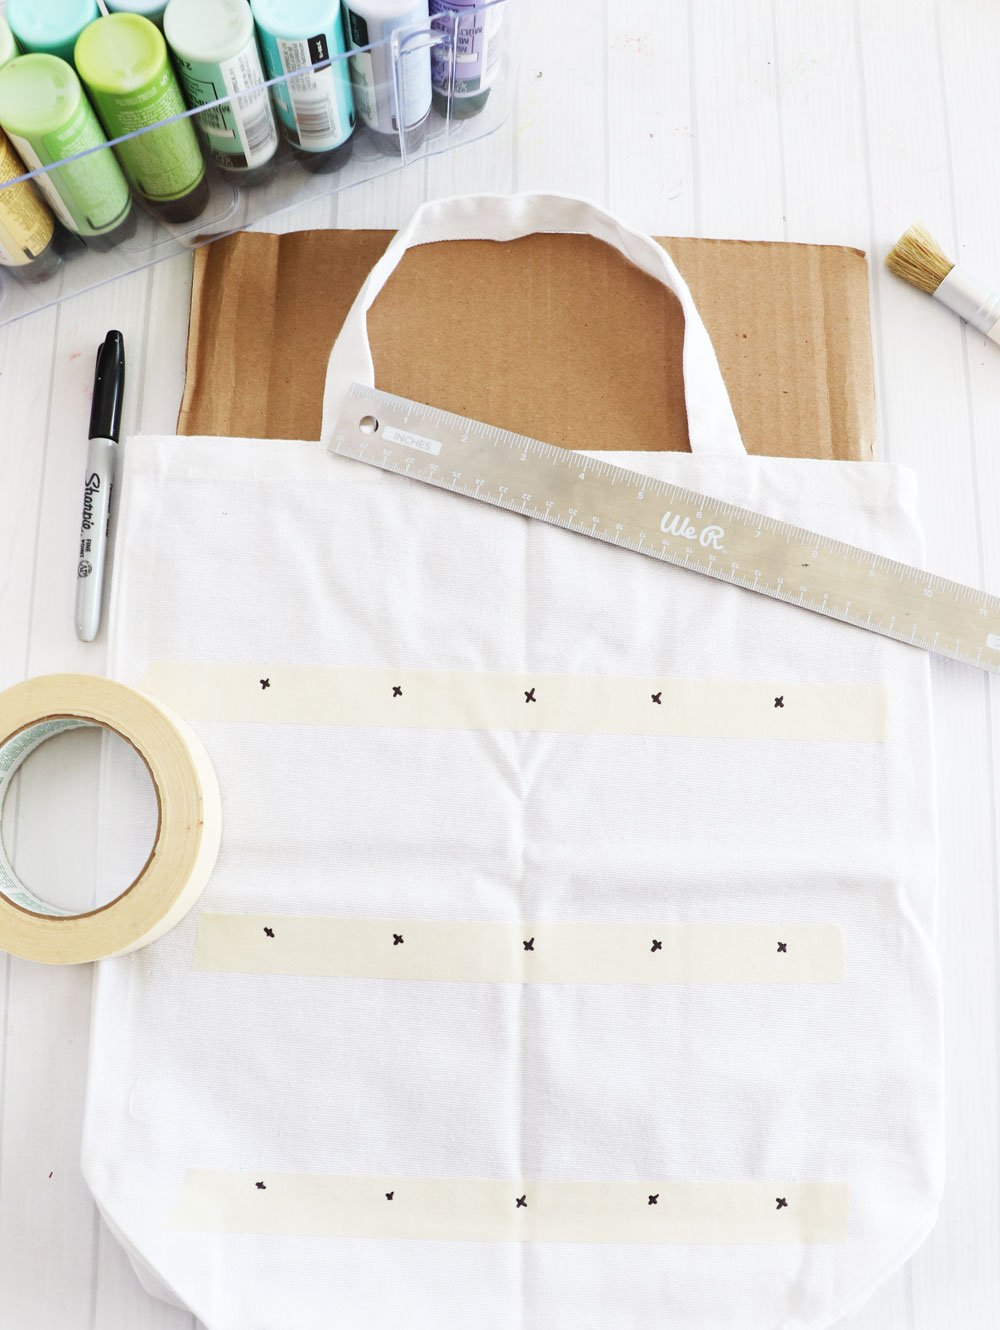 mark design spacing on tote